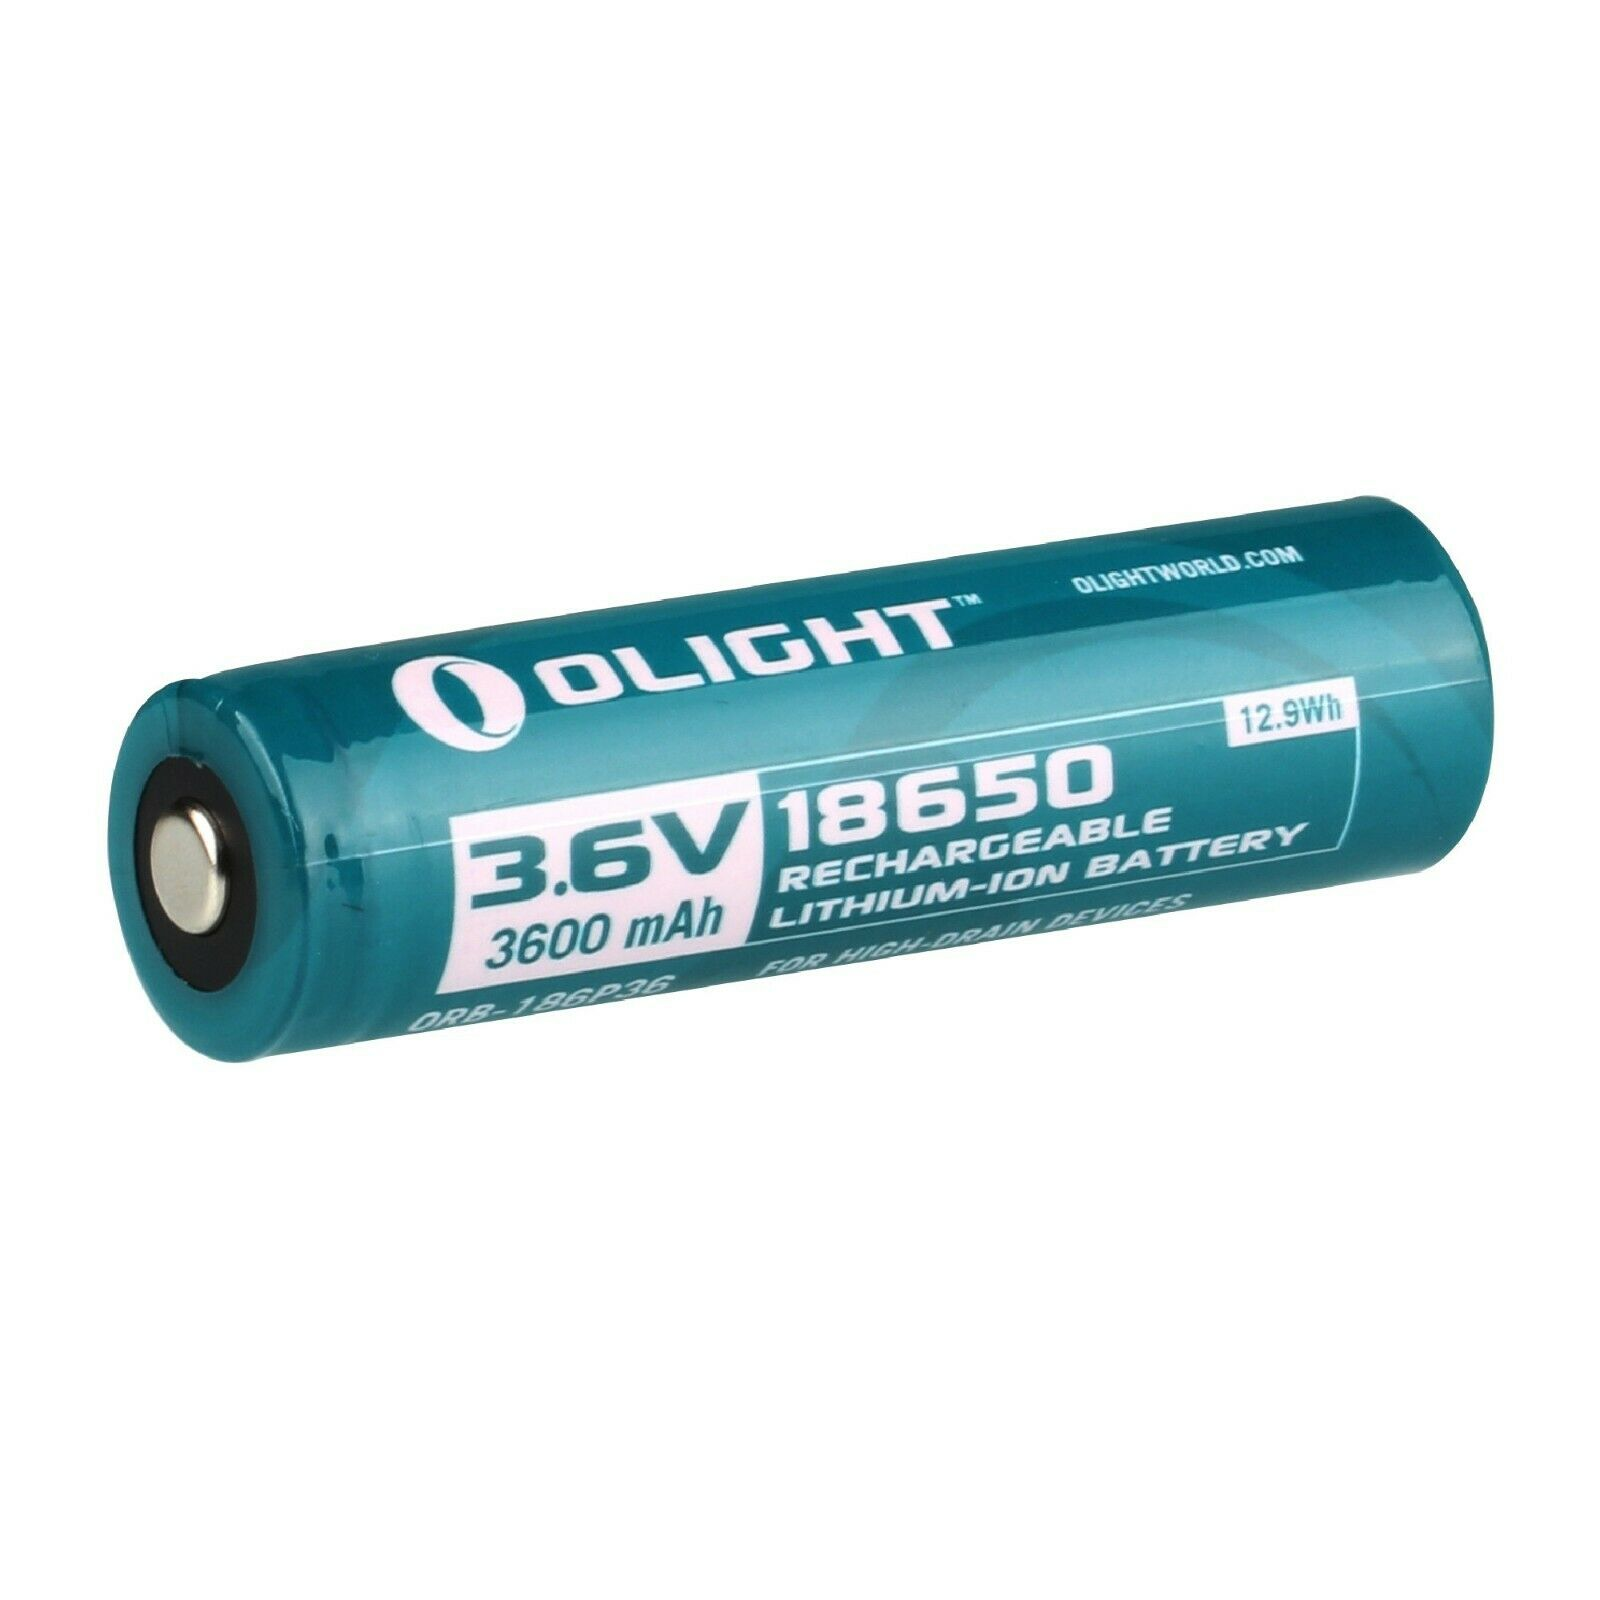 Olight  18650 3.6V 3600mAh Rechargeable Li-ion Predected Battery ORB-186P36 x 2  save 35% - 70% off